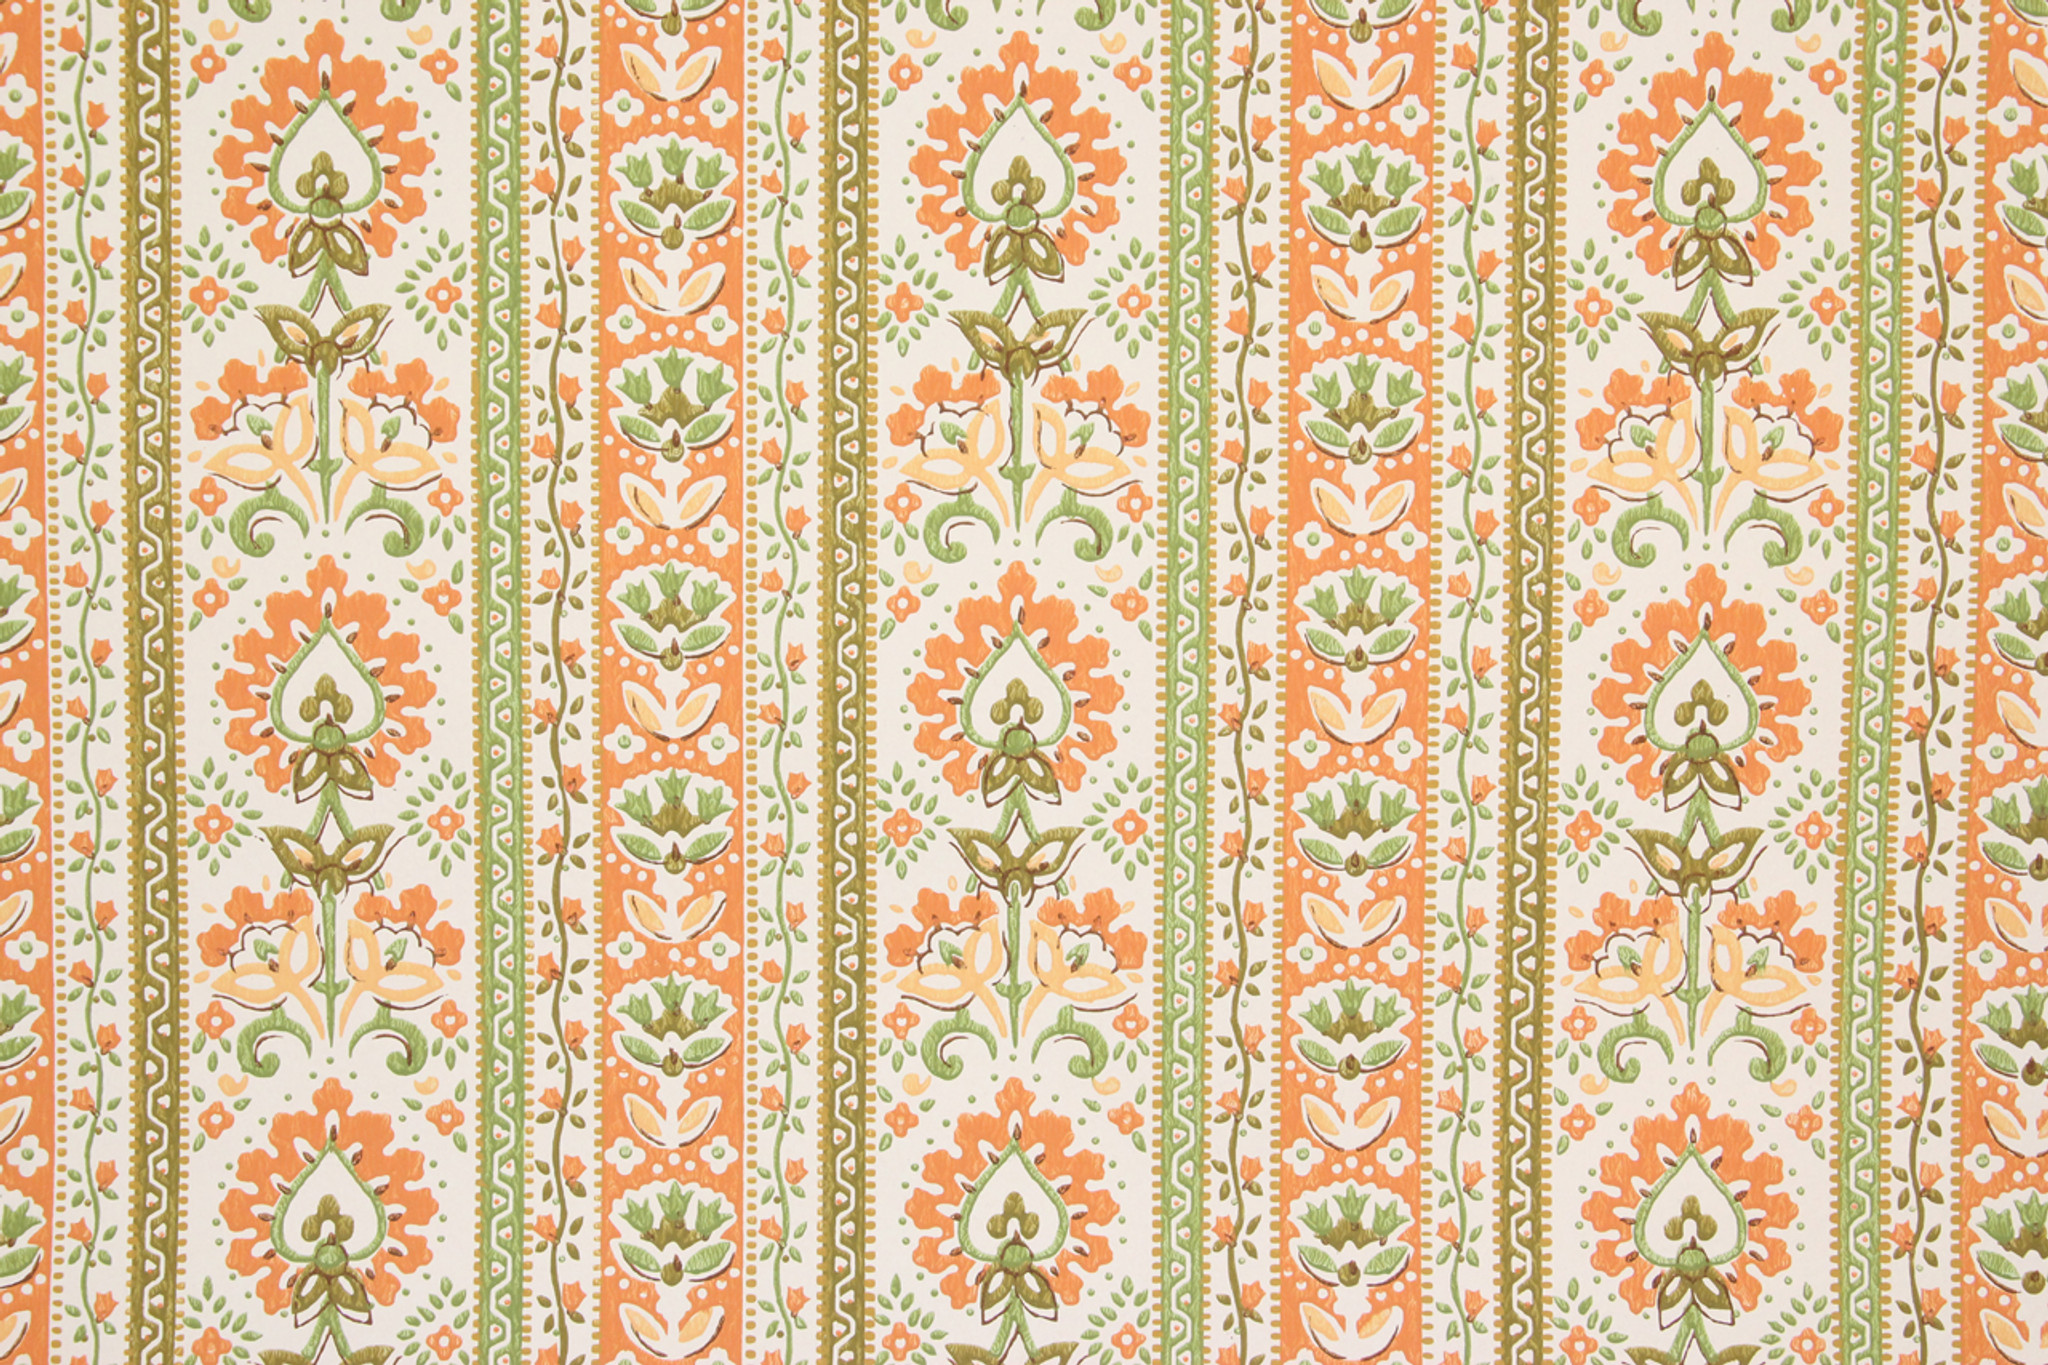 1970s Vintage Wallpaper Orange Floral Stripe Rosie S Vintage